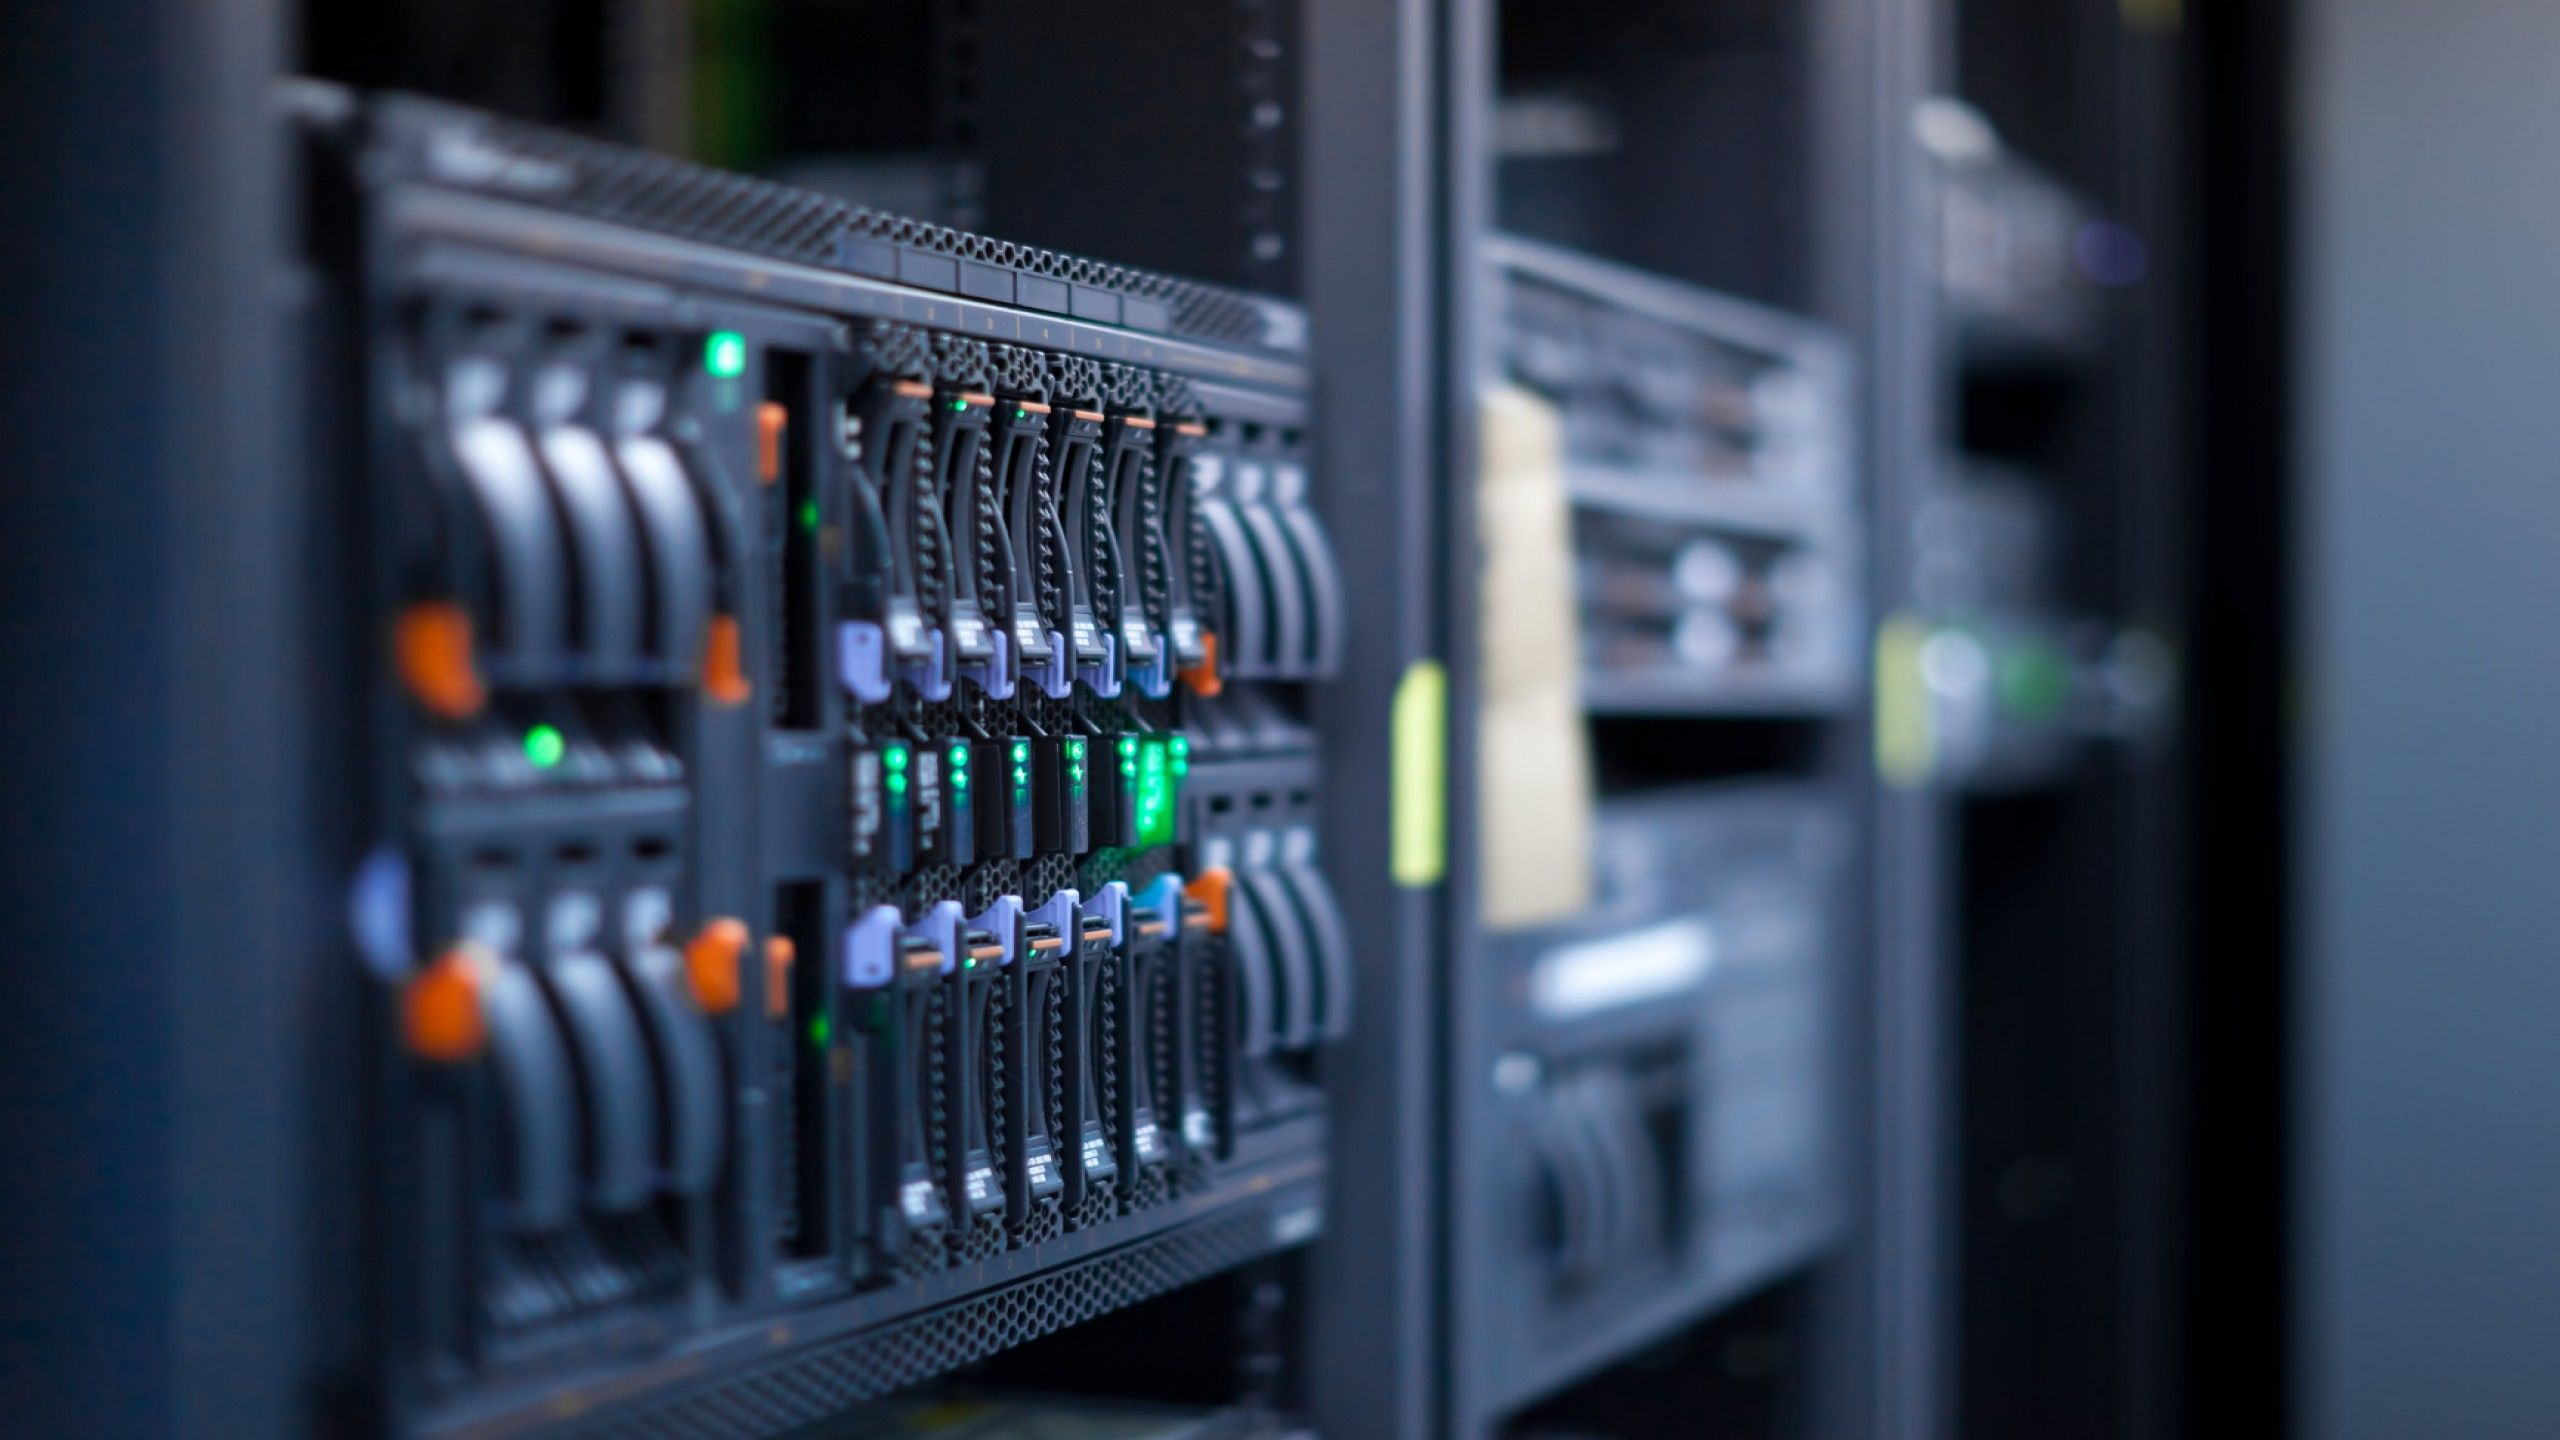 servers-local-support-smart-hands-networks-retail